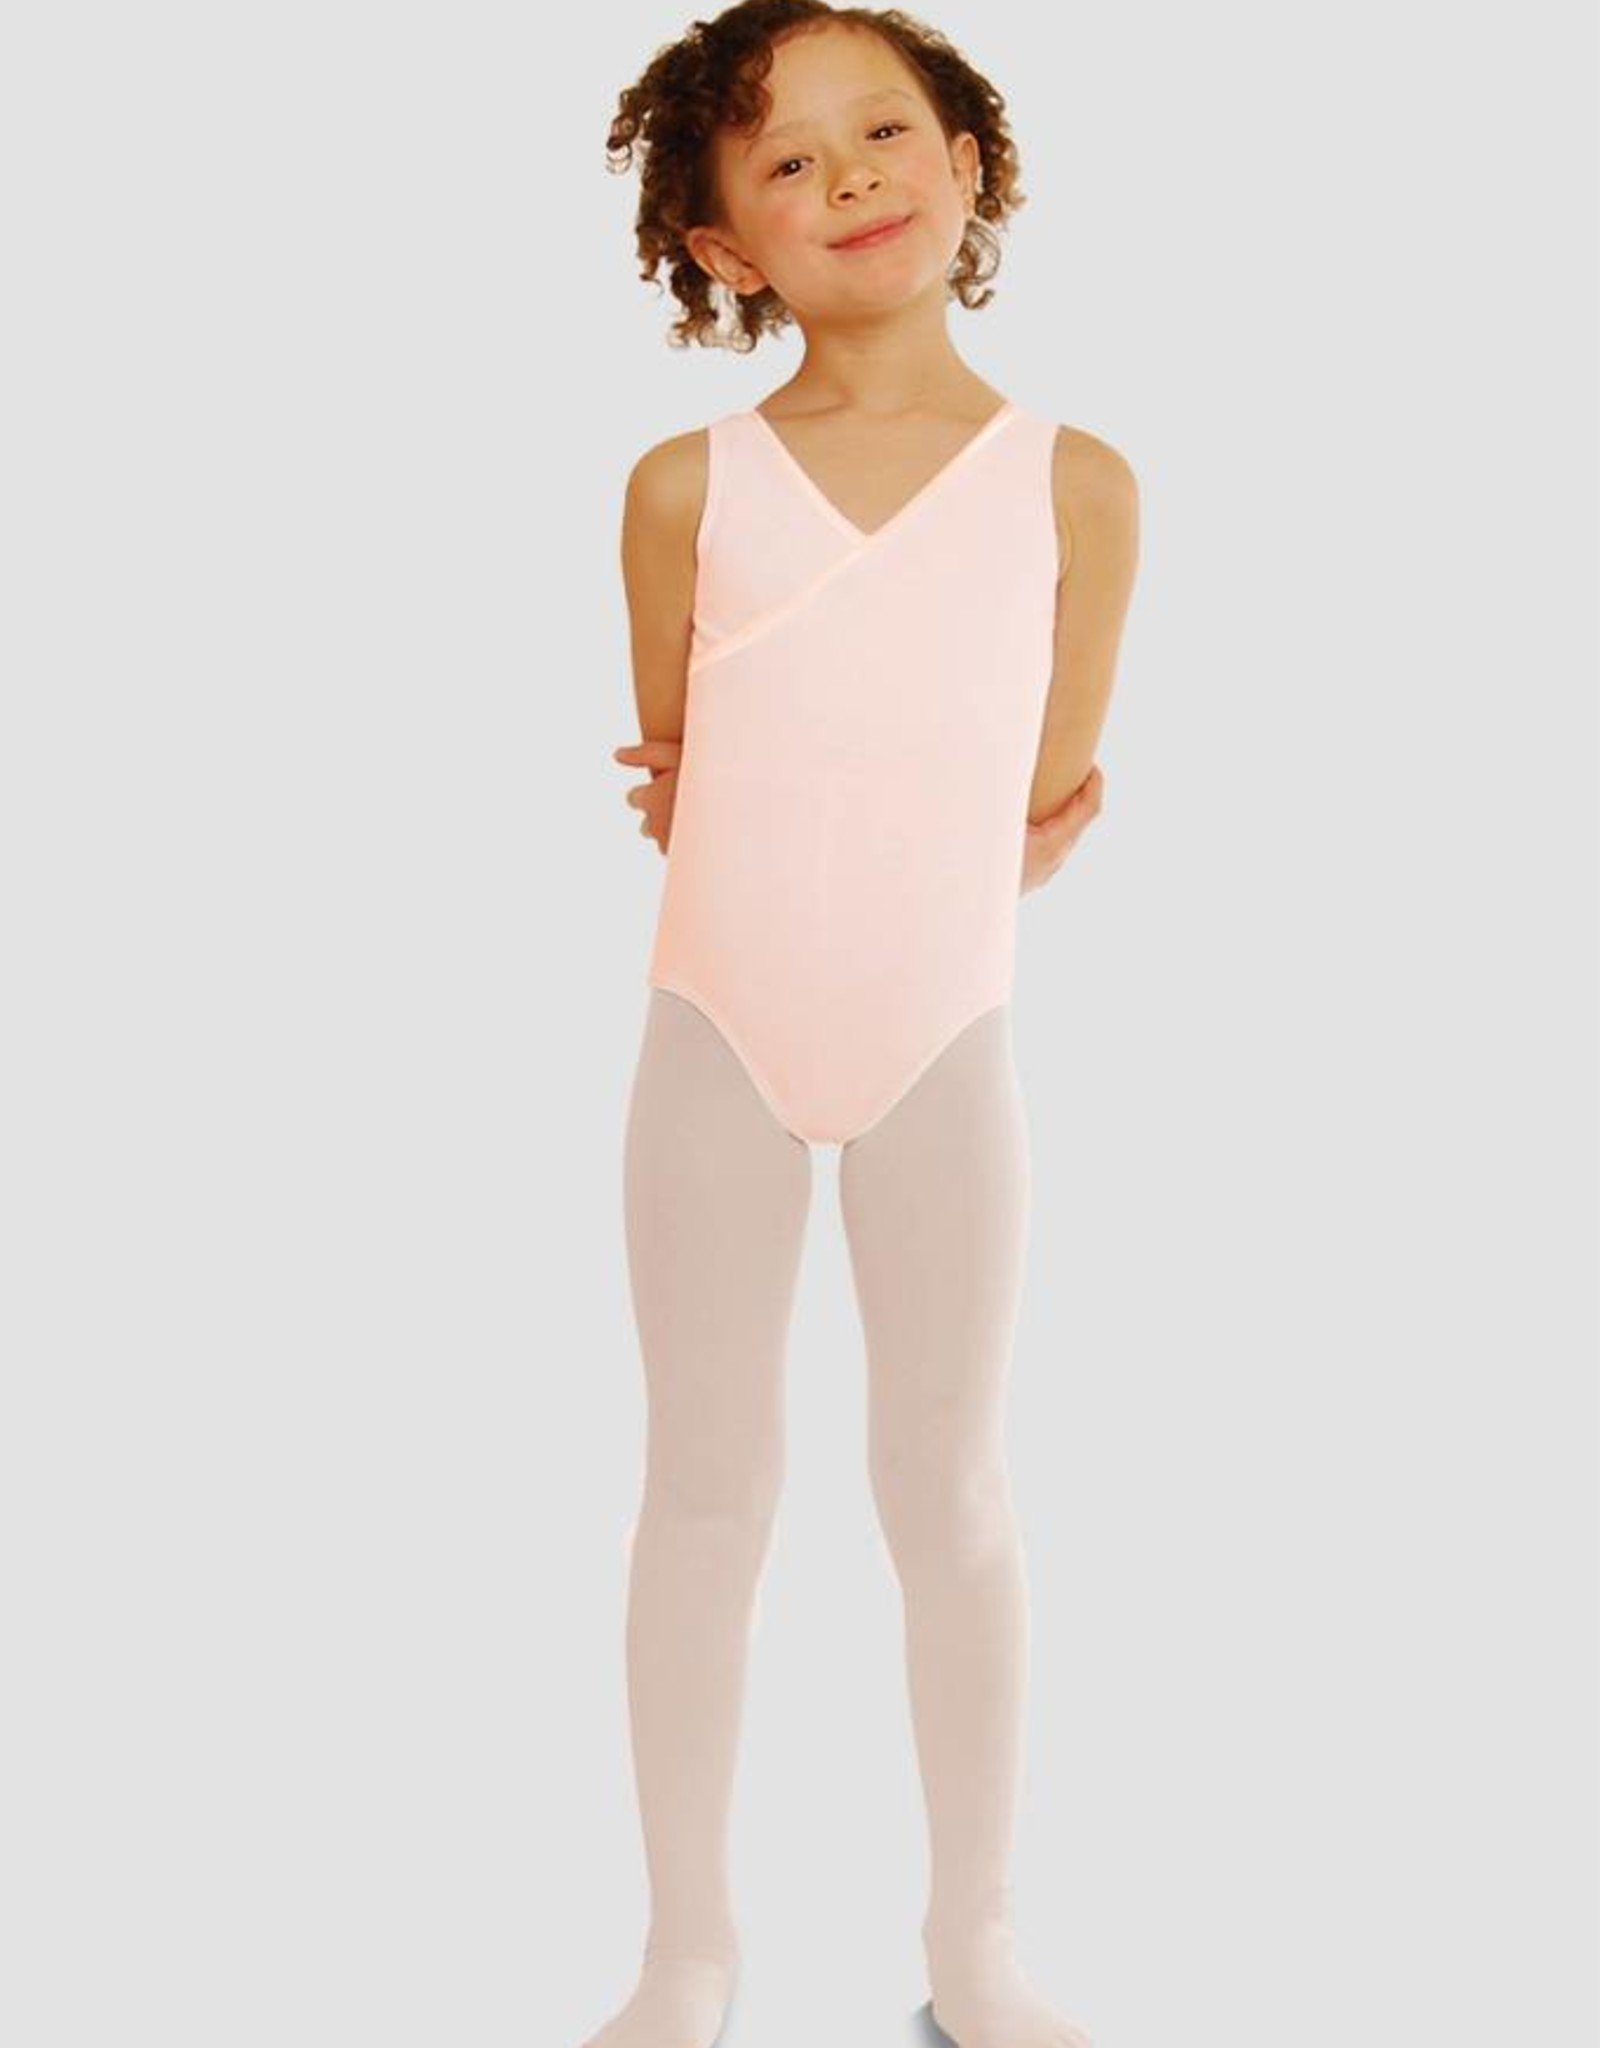 Gaynor Minden Mini Minden Girls Footed Tights